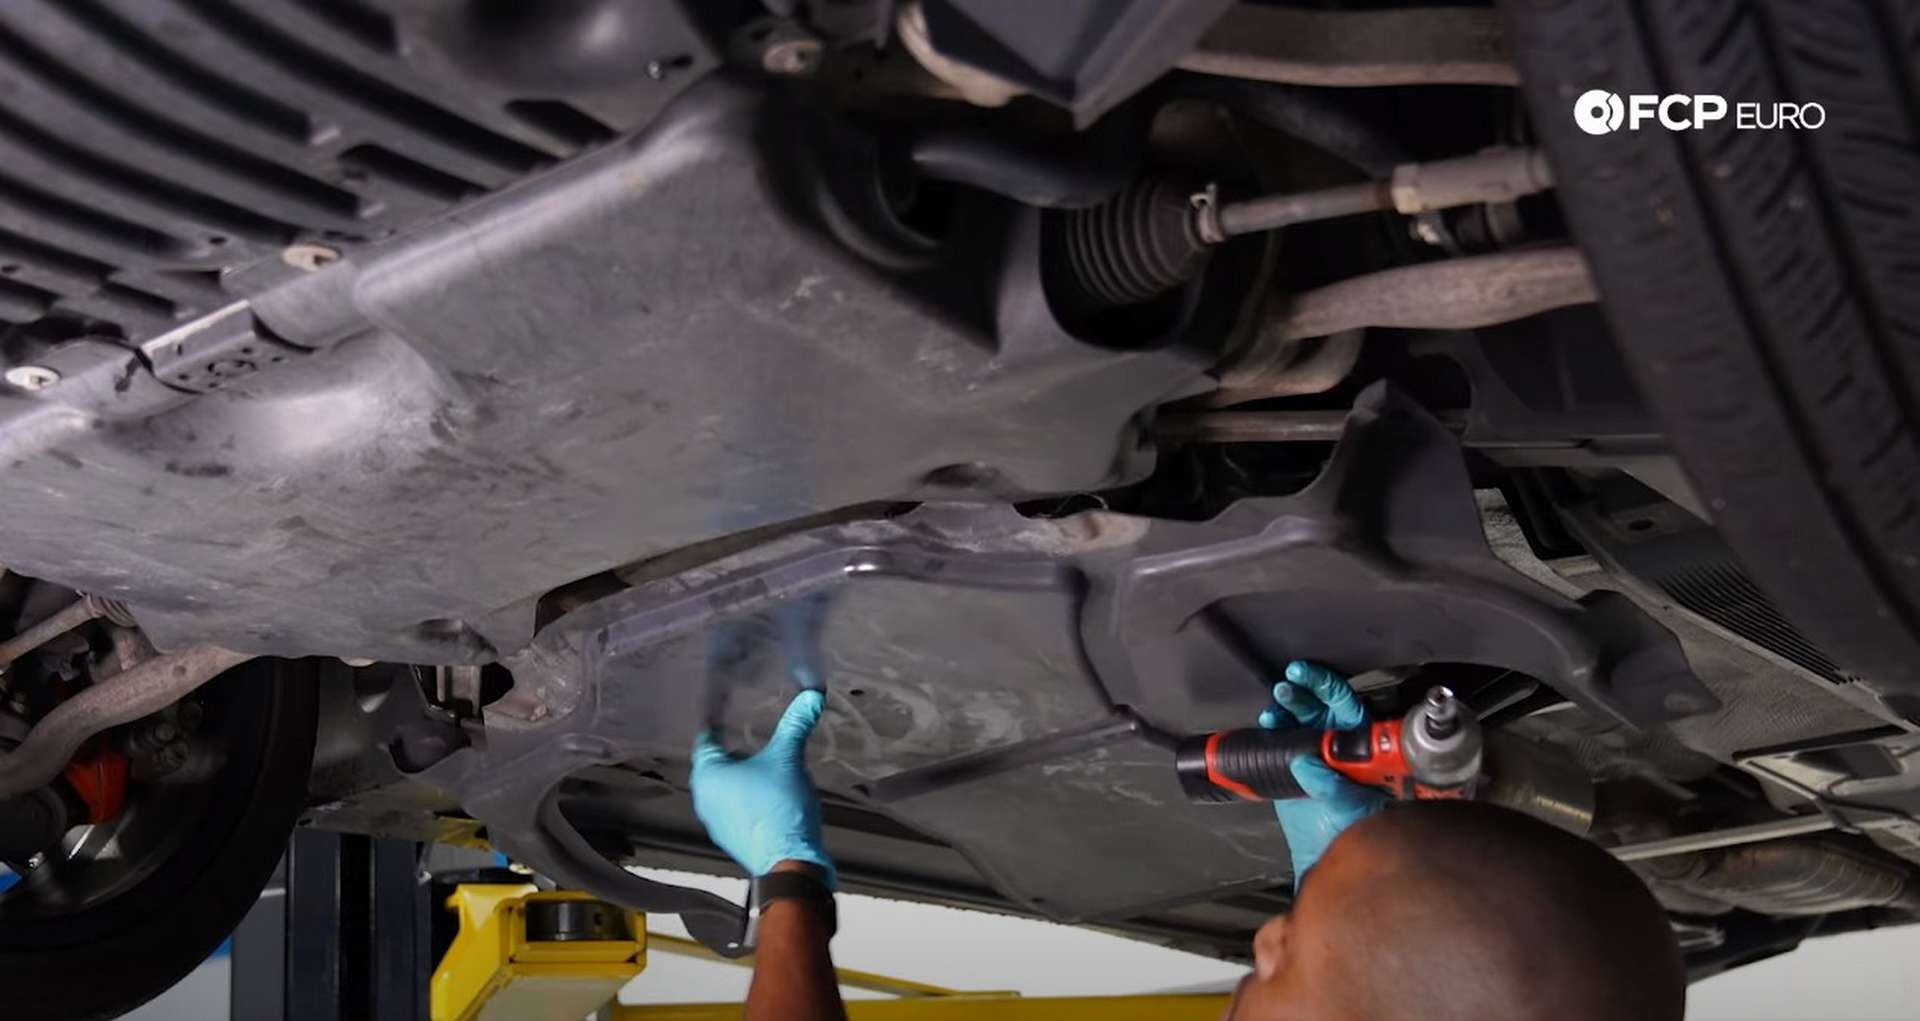 07-DIY-Merc-M271-Oil-Change-Draining-Oils